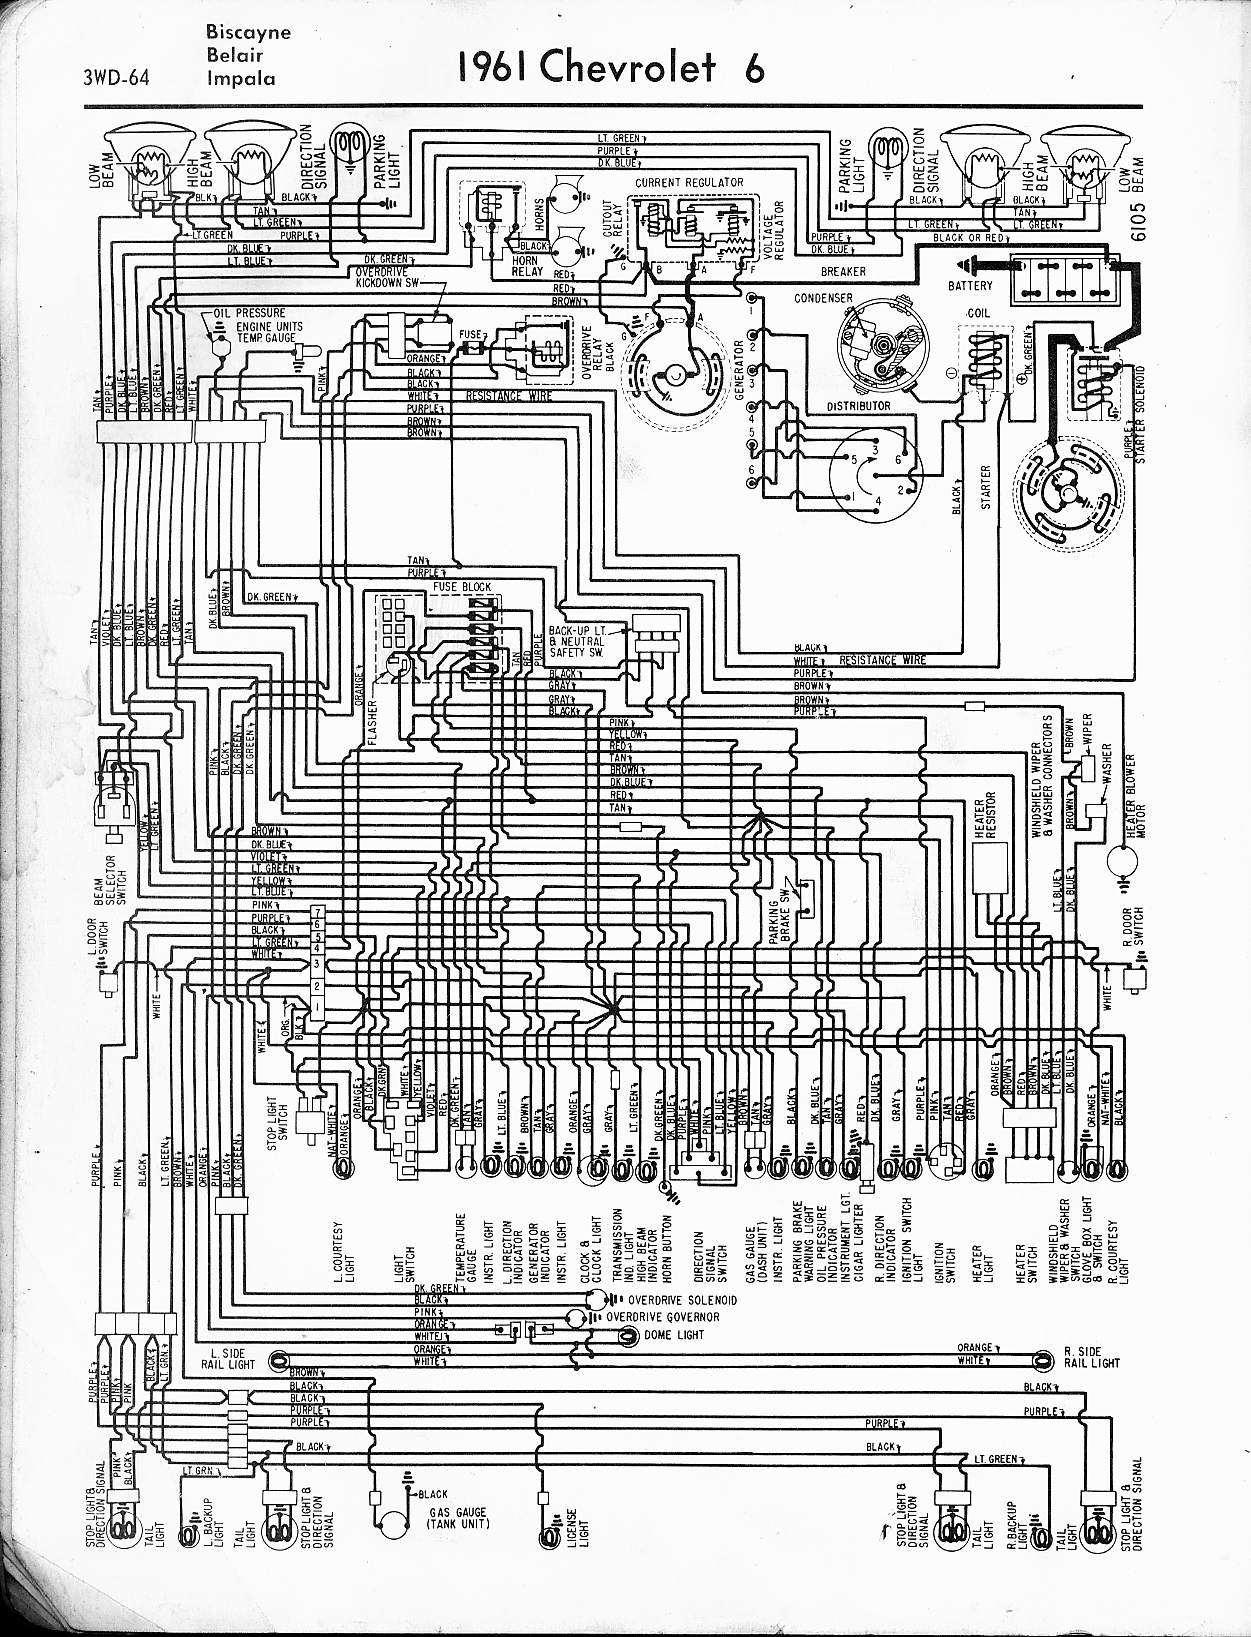 hight resolution of wrg 2562 impala fuse diagram 2005 chevy impala engine diagram furthermore 79 ford truck instrument